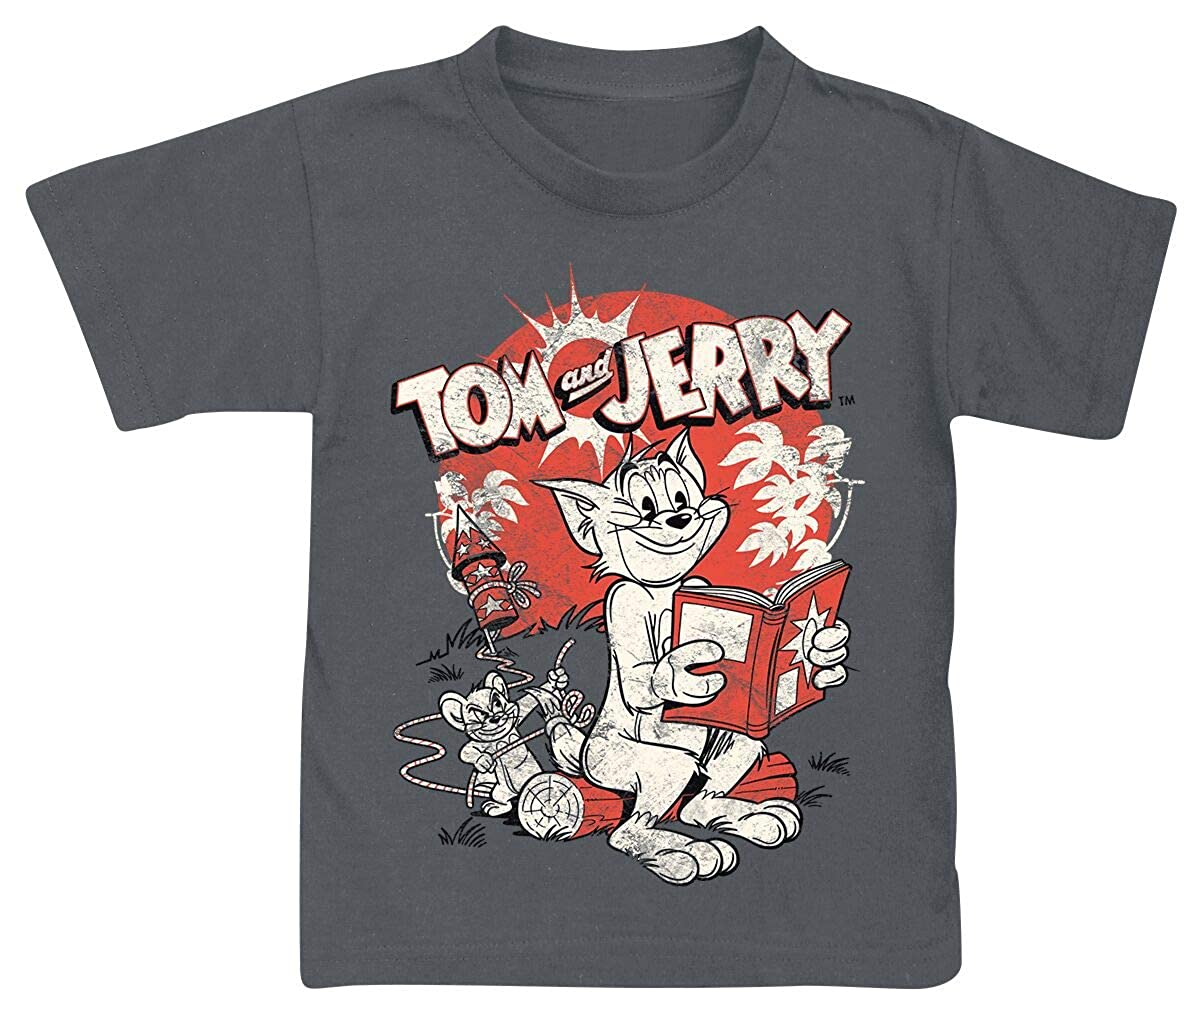 Tom und Jerry Vintage Comic T-Shirt dunkelgrau 152